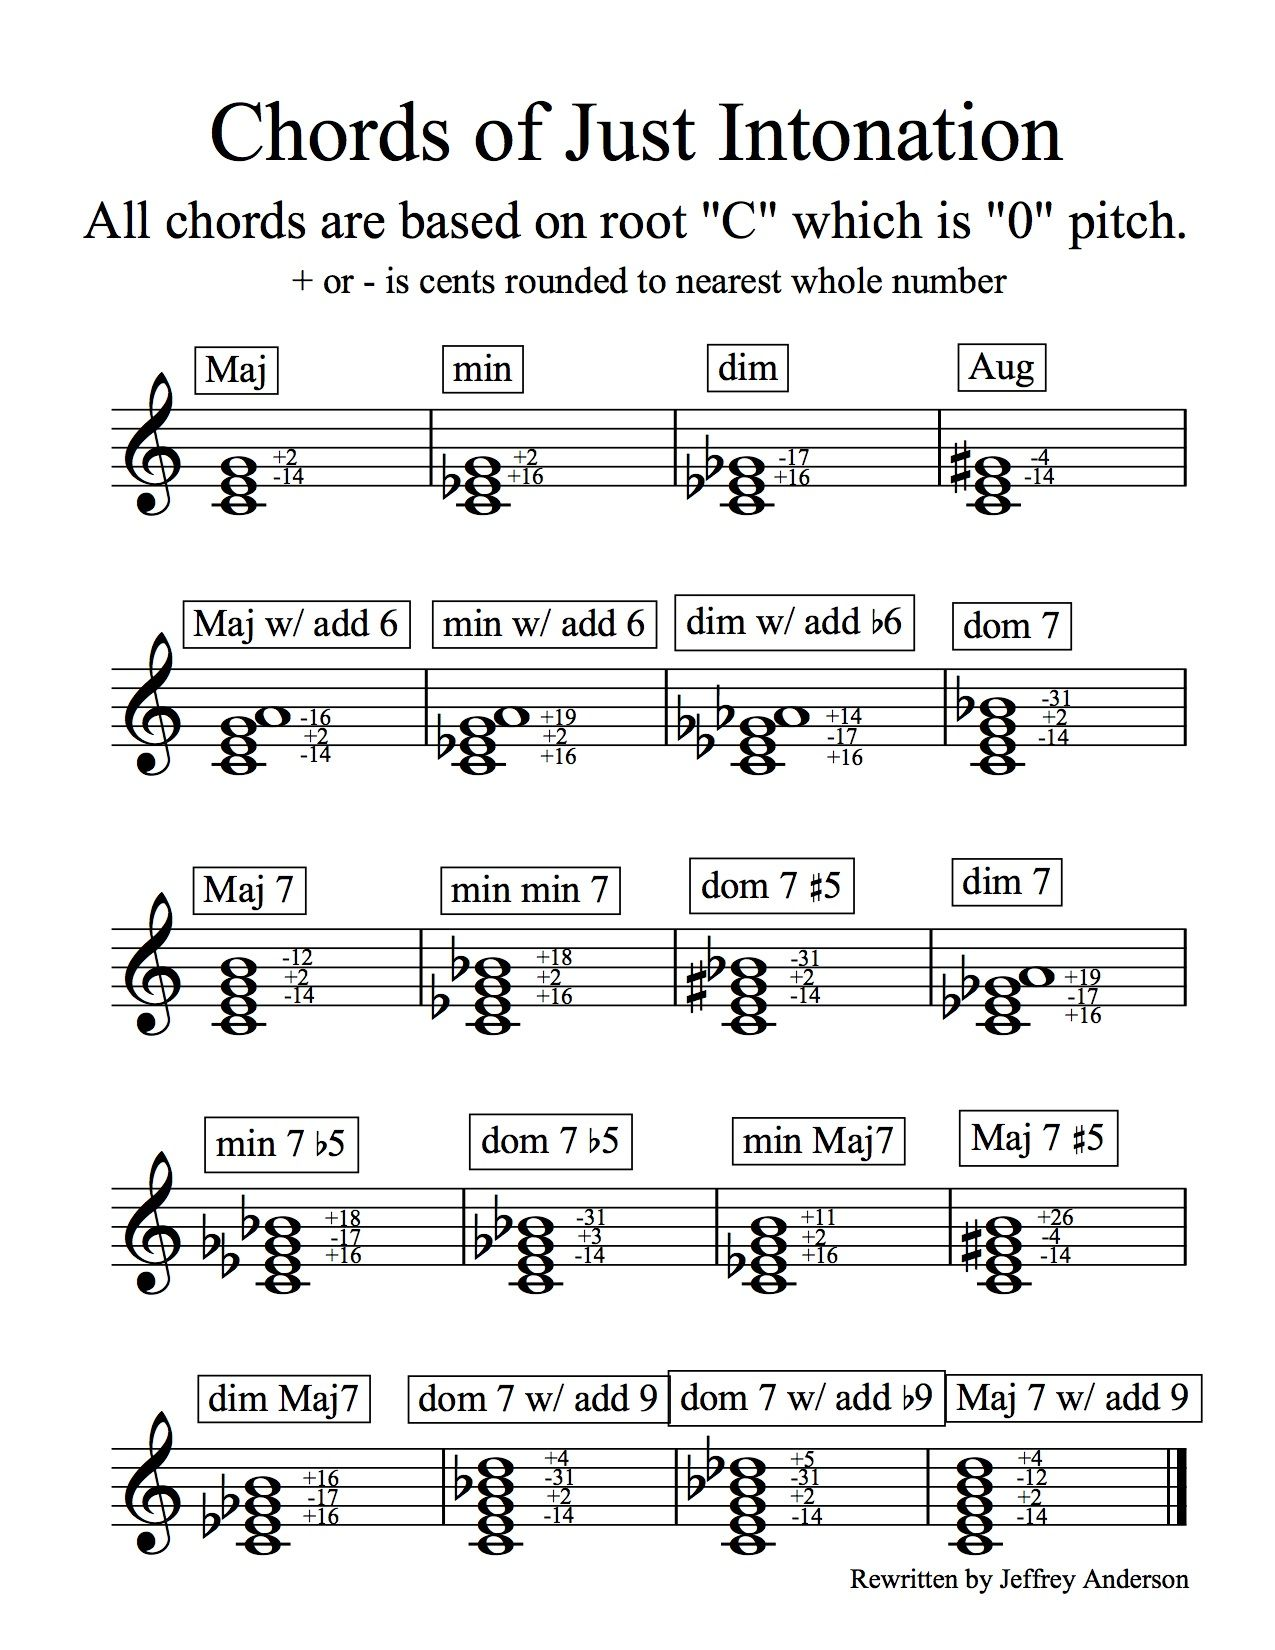 Just Intonation Chord Chart That Is Used For Wind Instruments When Guide Into How To Read Guitar Diagram Building And Tuning Chords Within